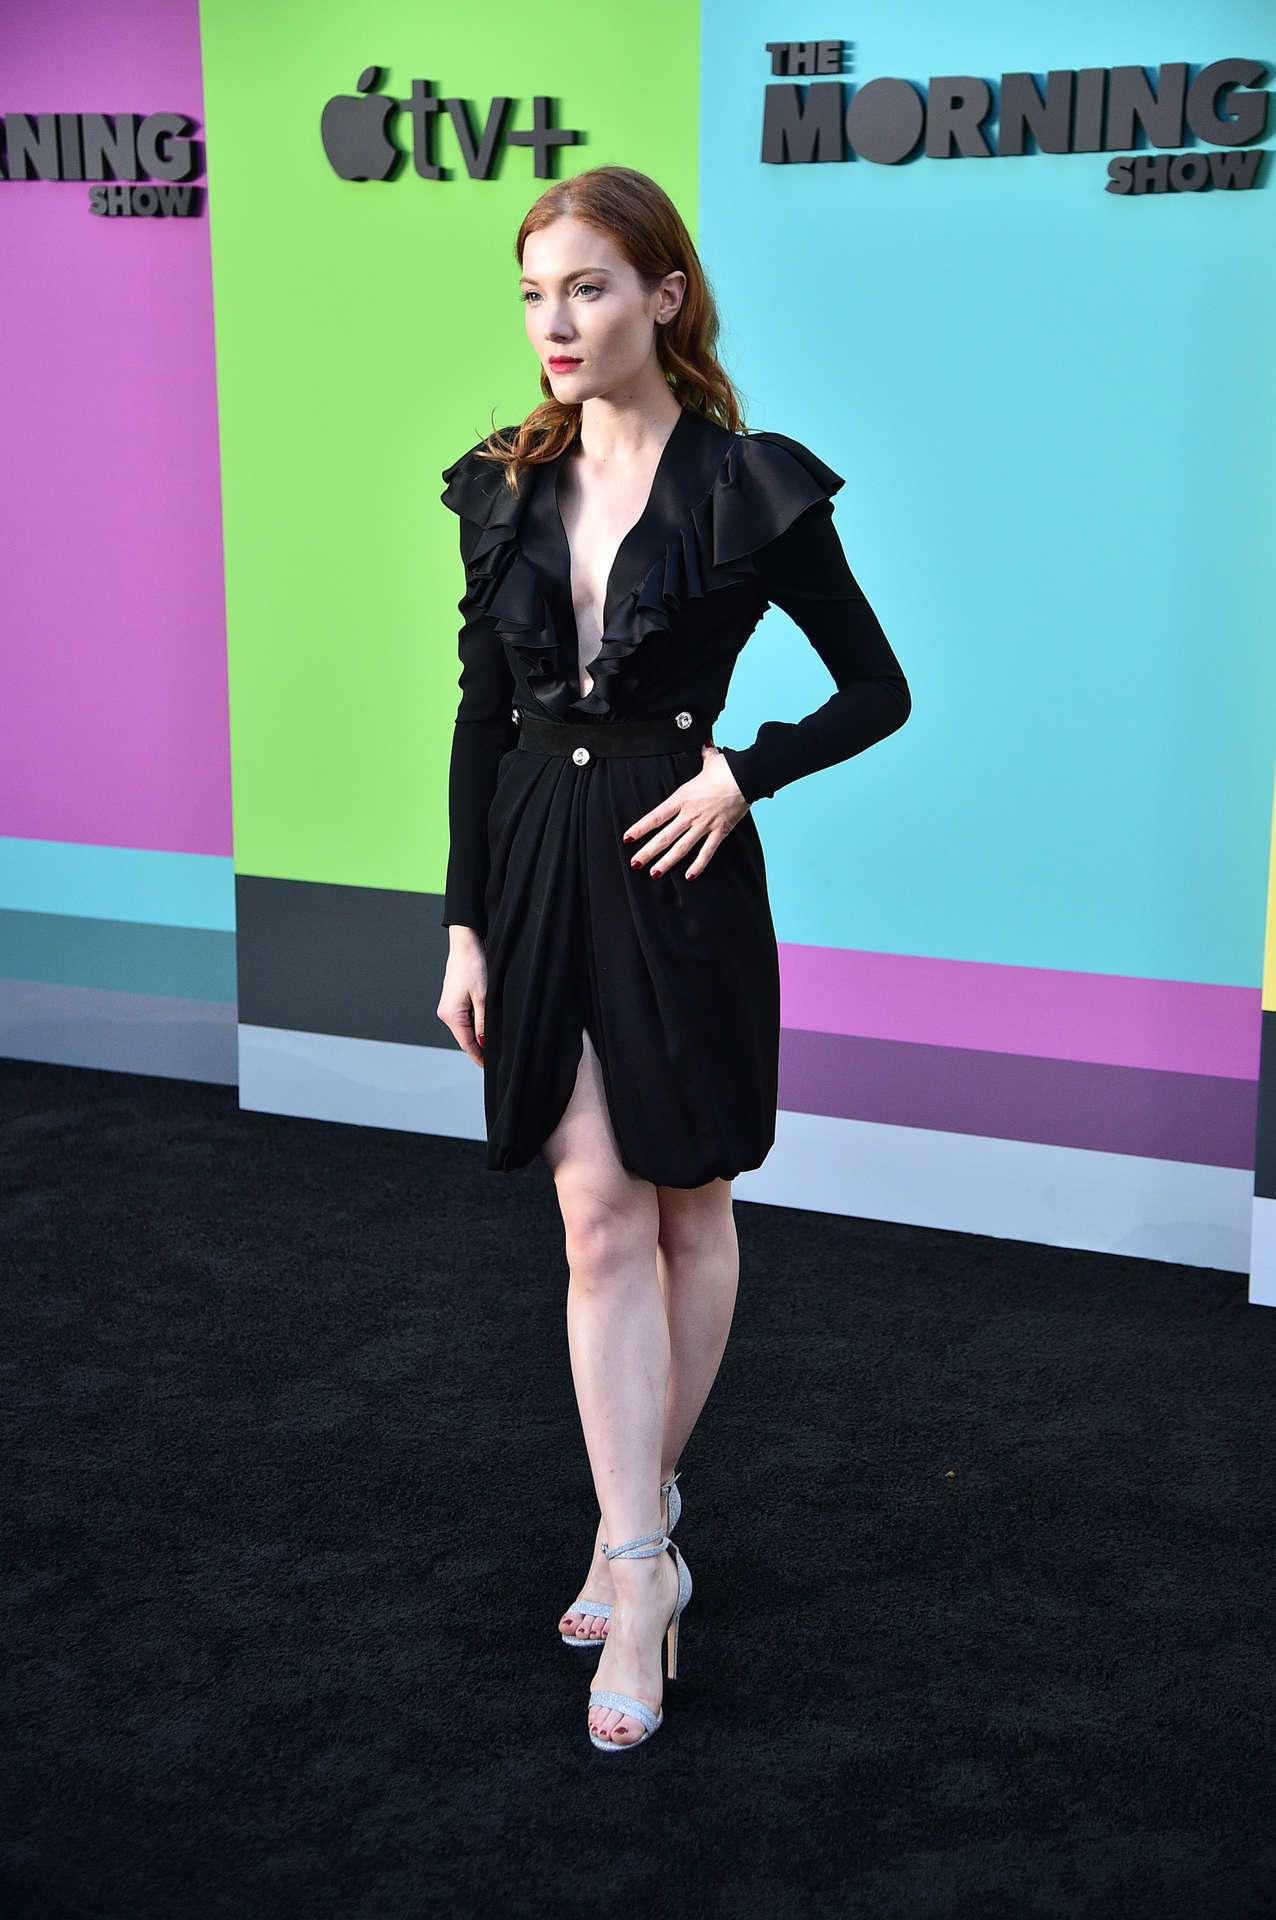 Skyler Samuels at The Morning Show Premiere in NY